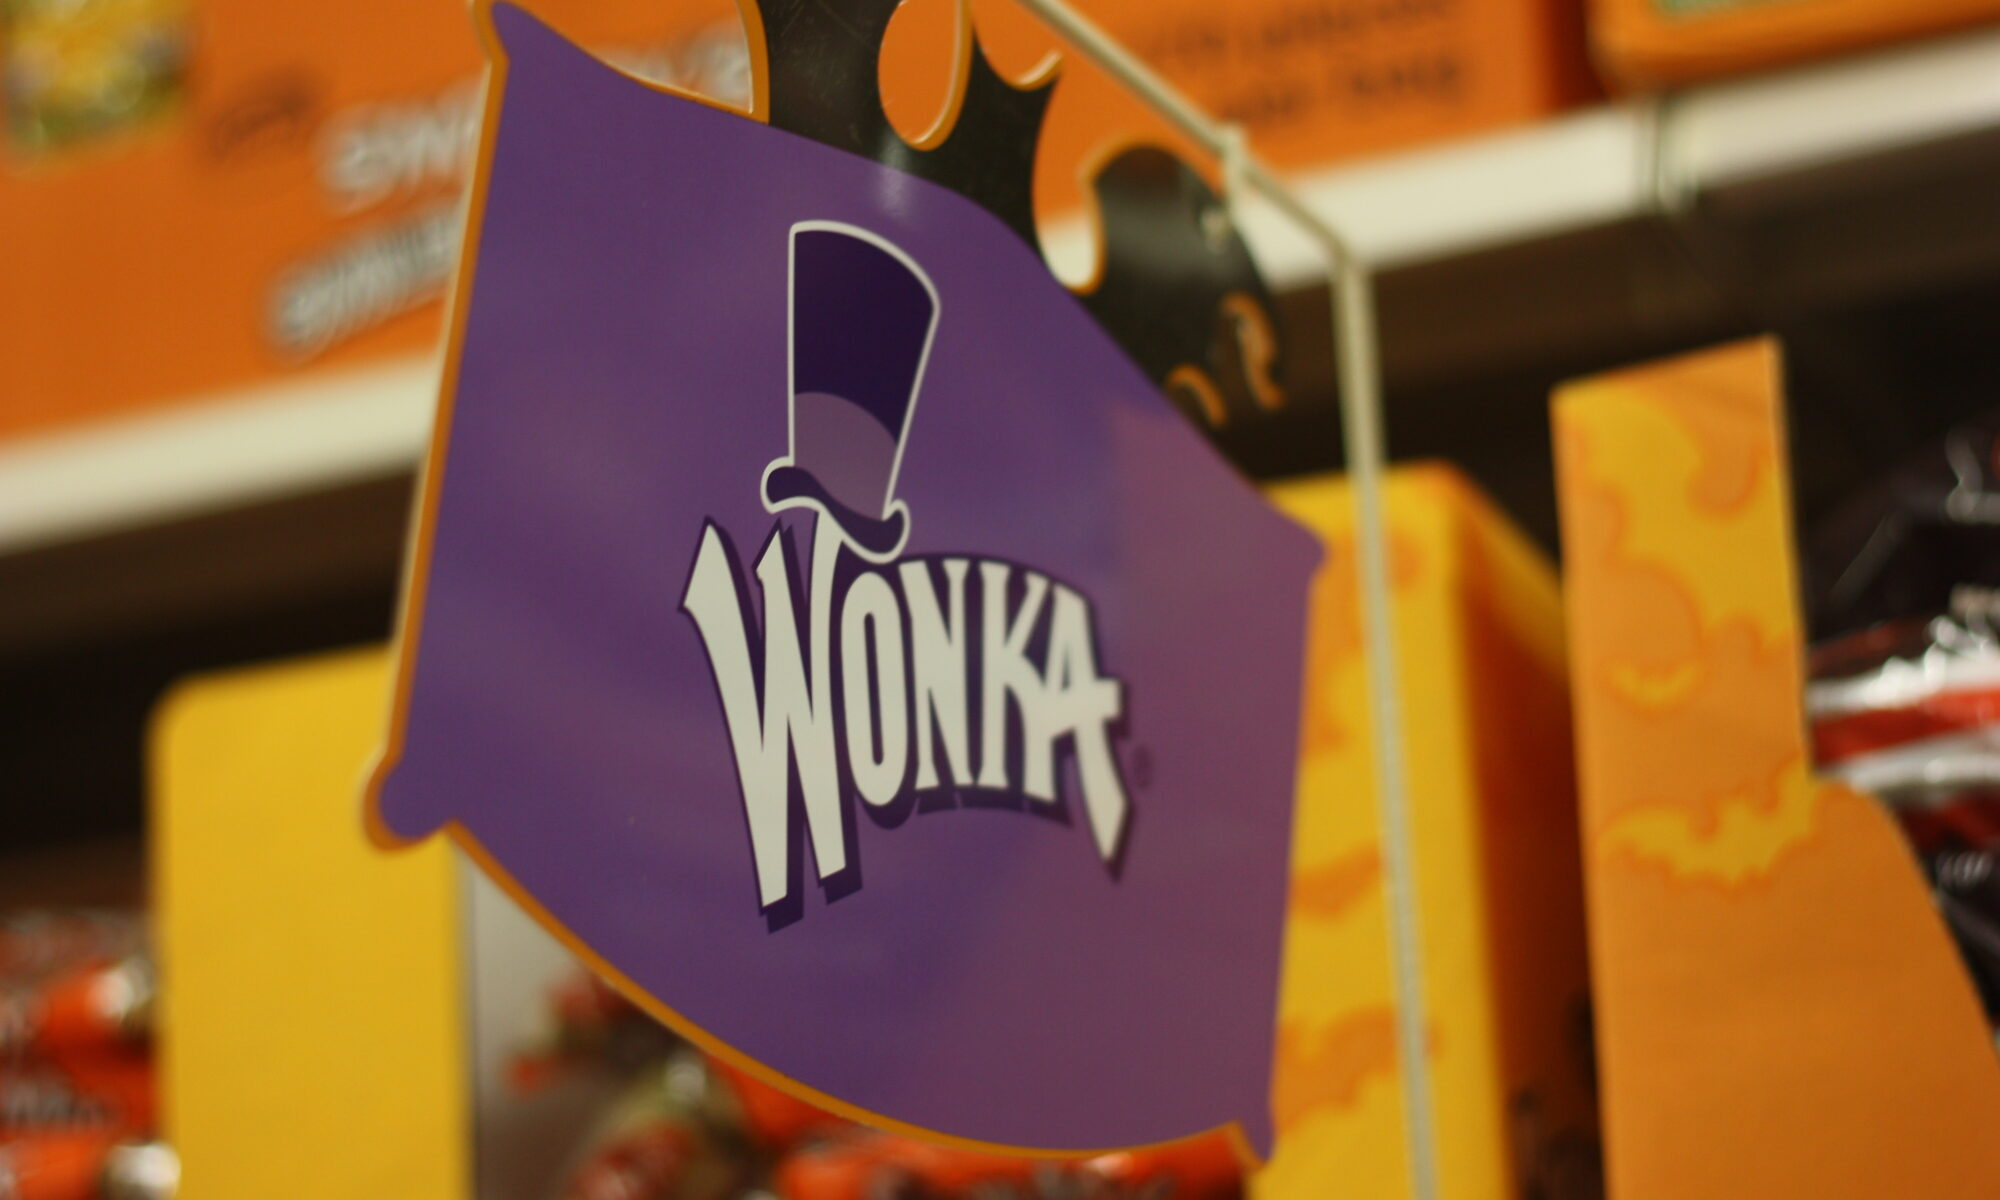 Wonka Post